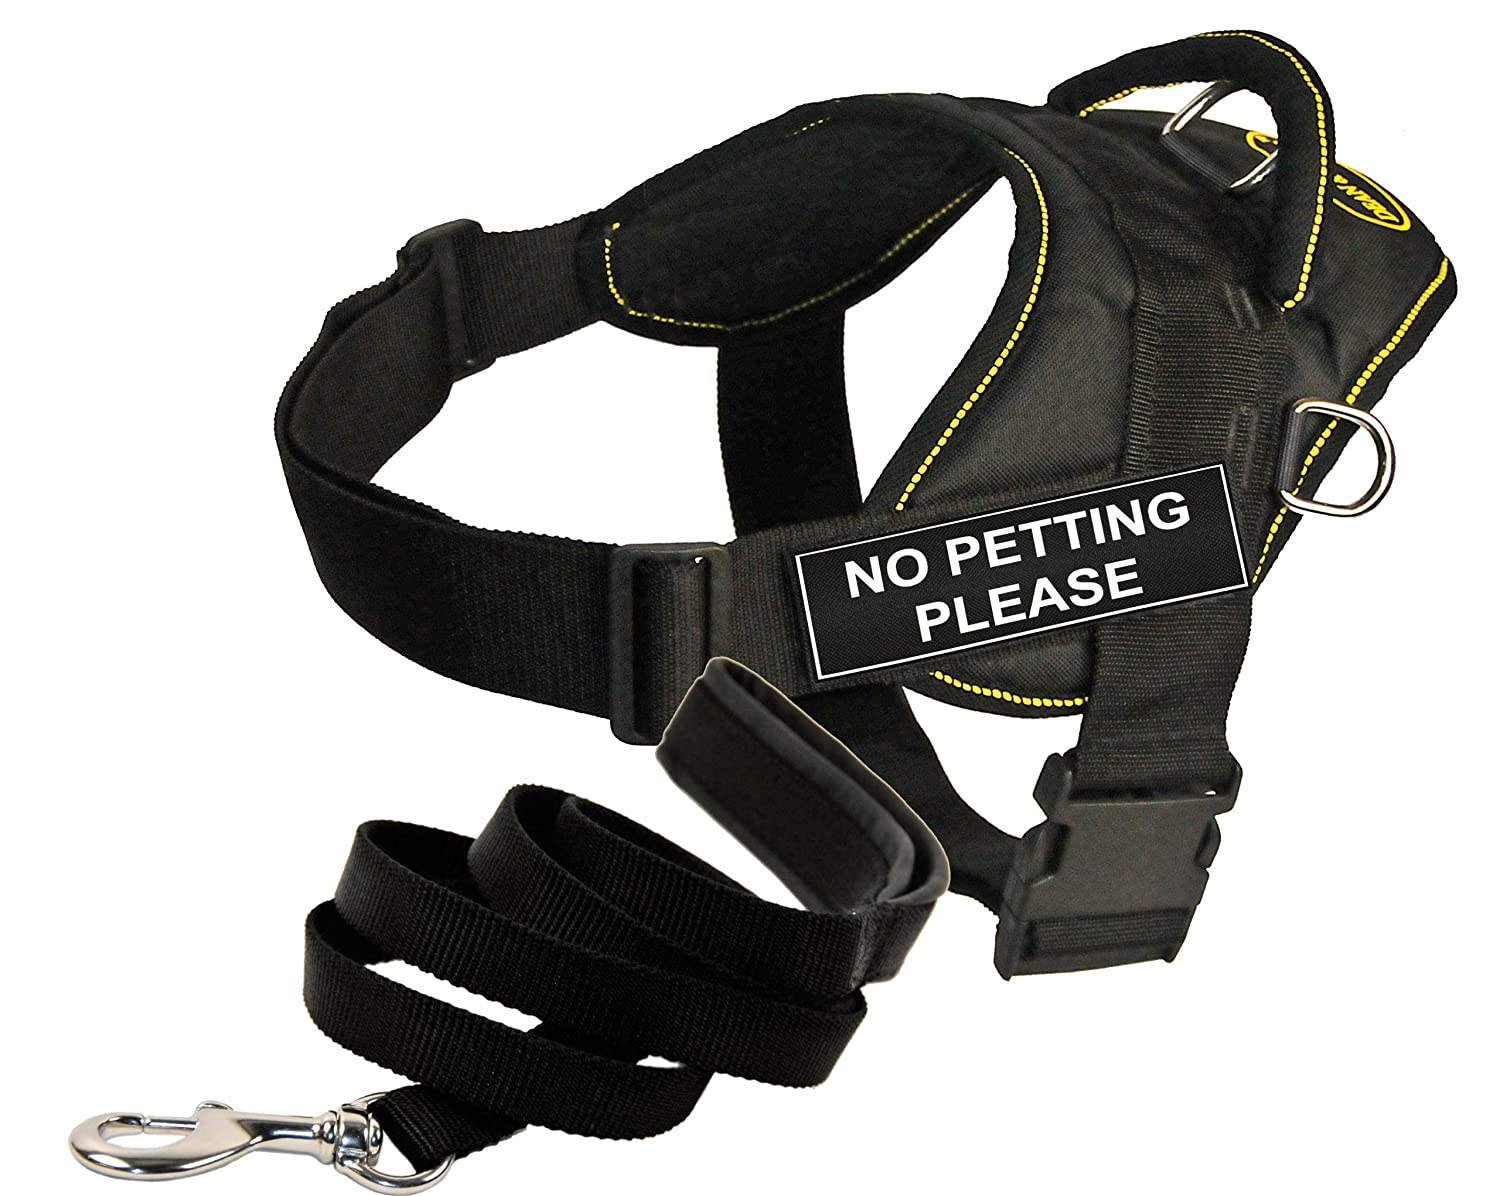 Dean and Tyler Bundle One DT Fun Works  Harness, No Petting Please, Yellow Trim, XLarge + One Padded Puppy  Leash, 6 FT Stainless Snap Black